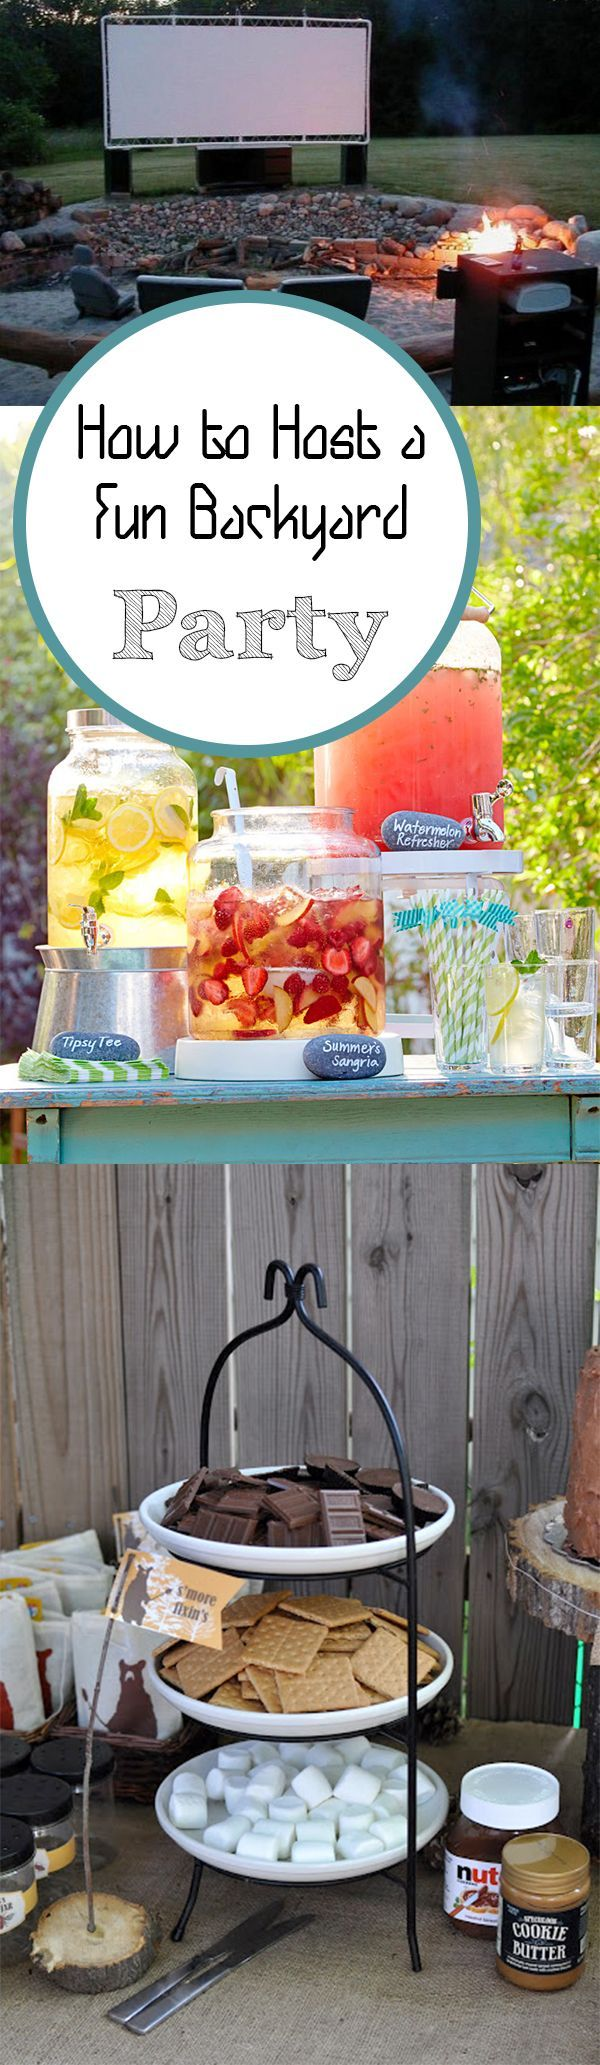 Need some backyard party inspiration? These creative ideas will make for a time to remember!